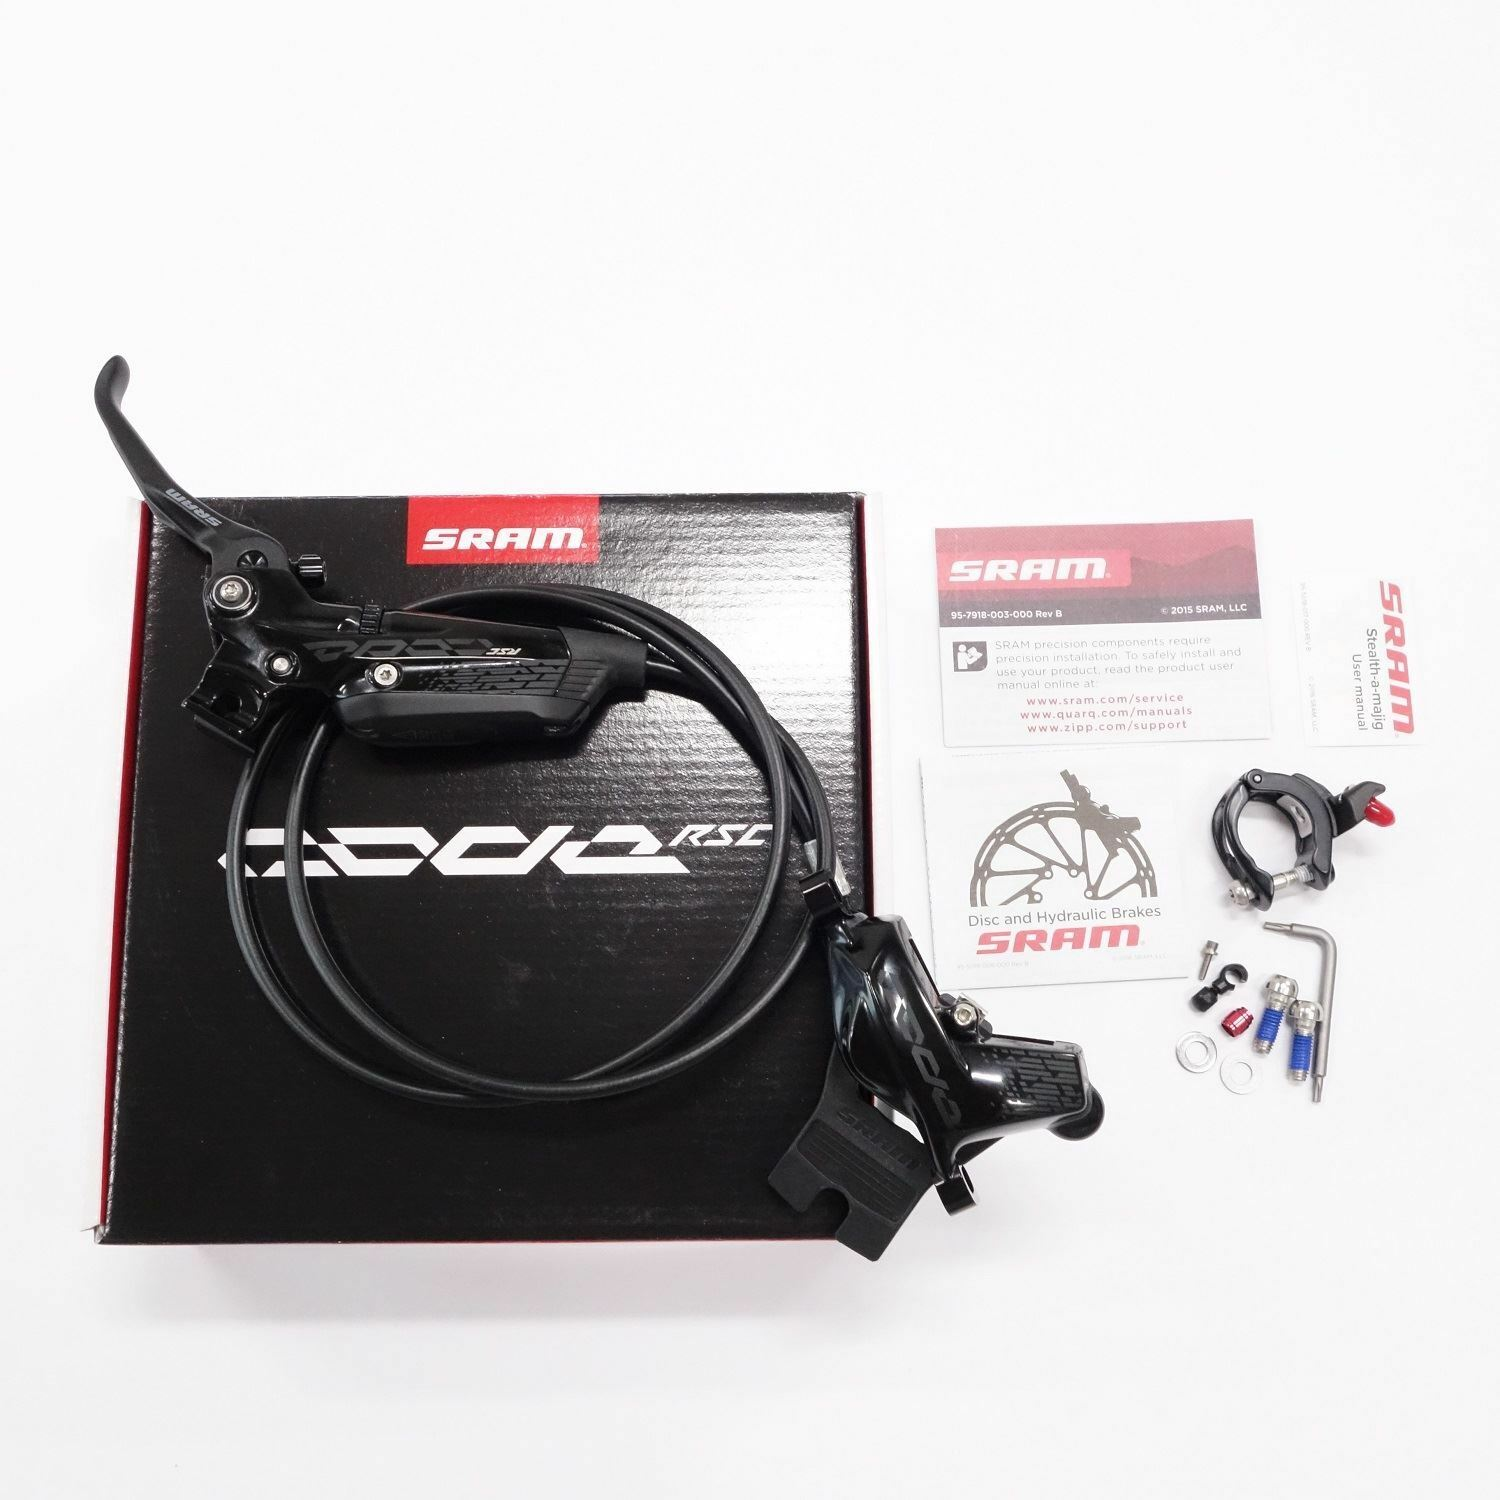 NEW SRAM Code RSC Disc Brake Lever Caliper  Set Hydraulic 950mm Hose Front Left  online at best price